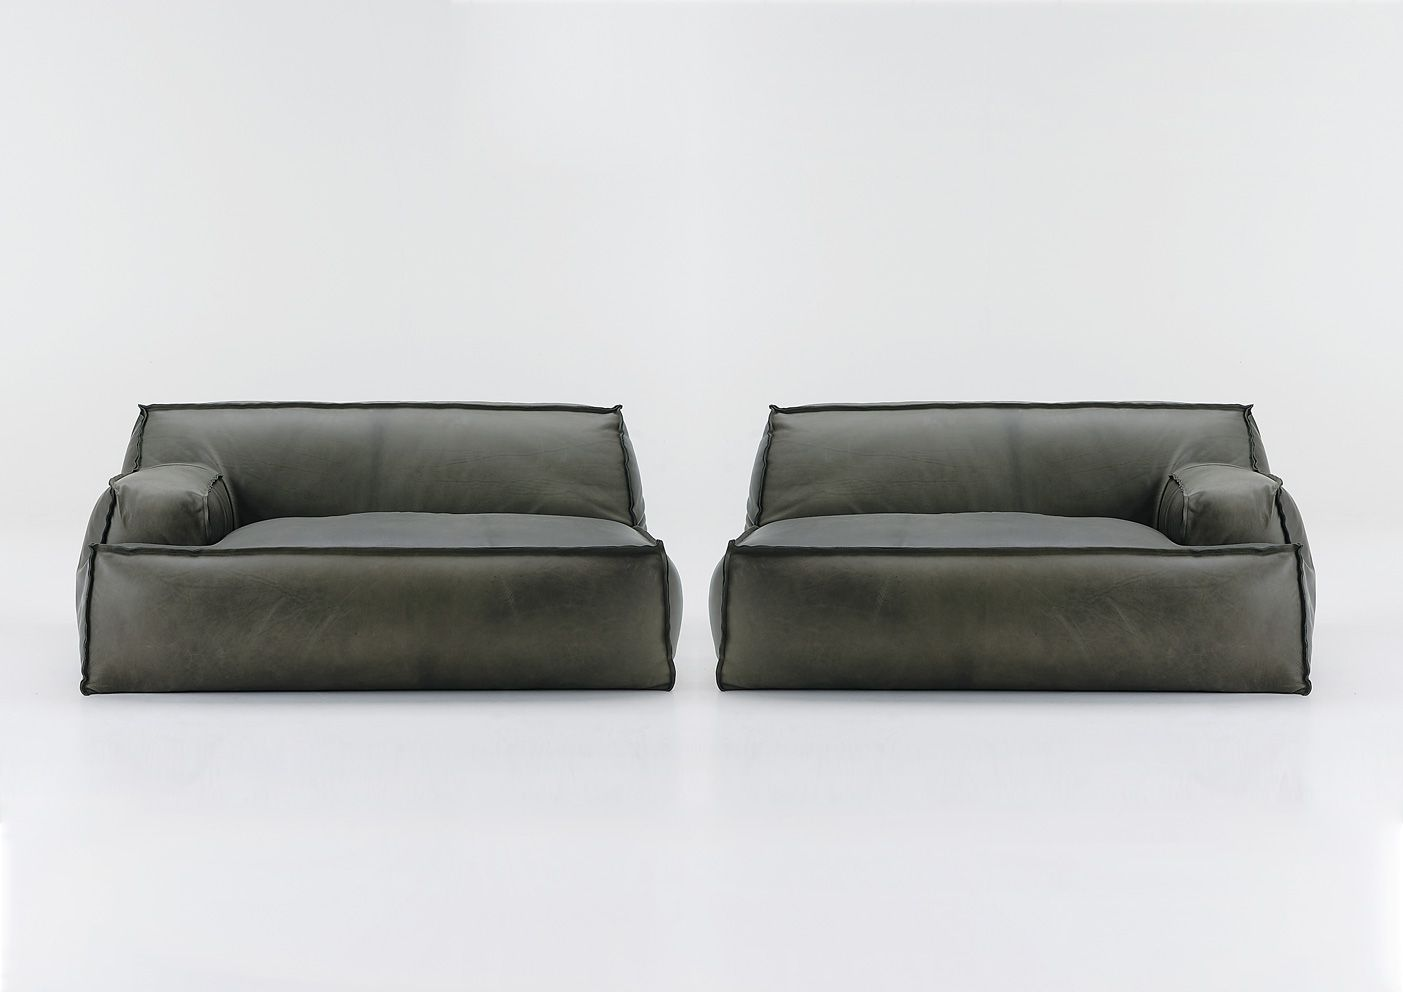 Condo Couches Baxter Damasco Designer Paola Navone Furniture